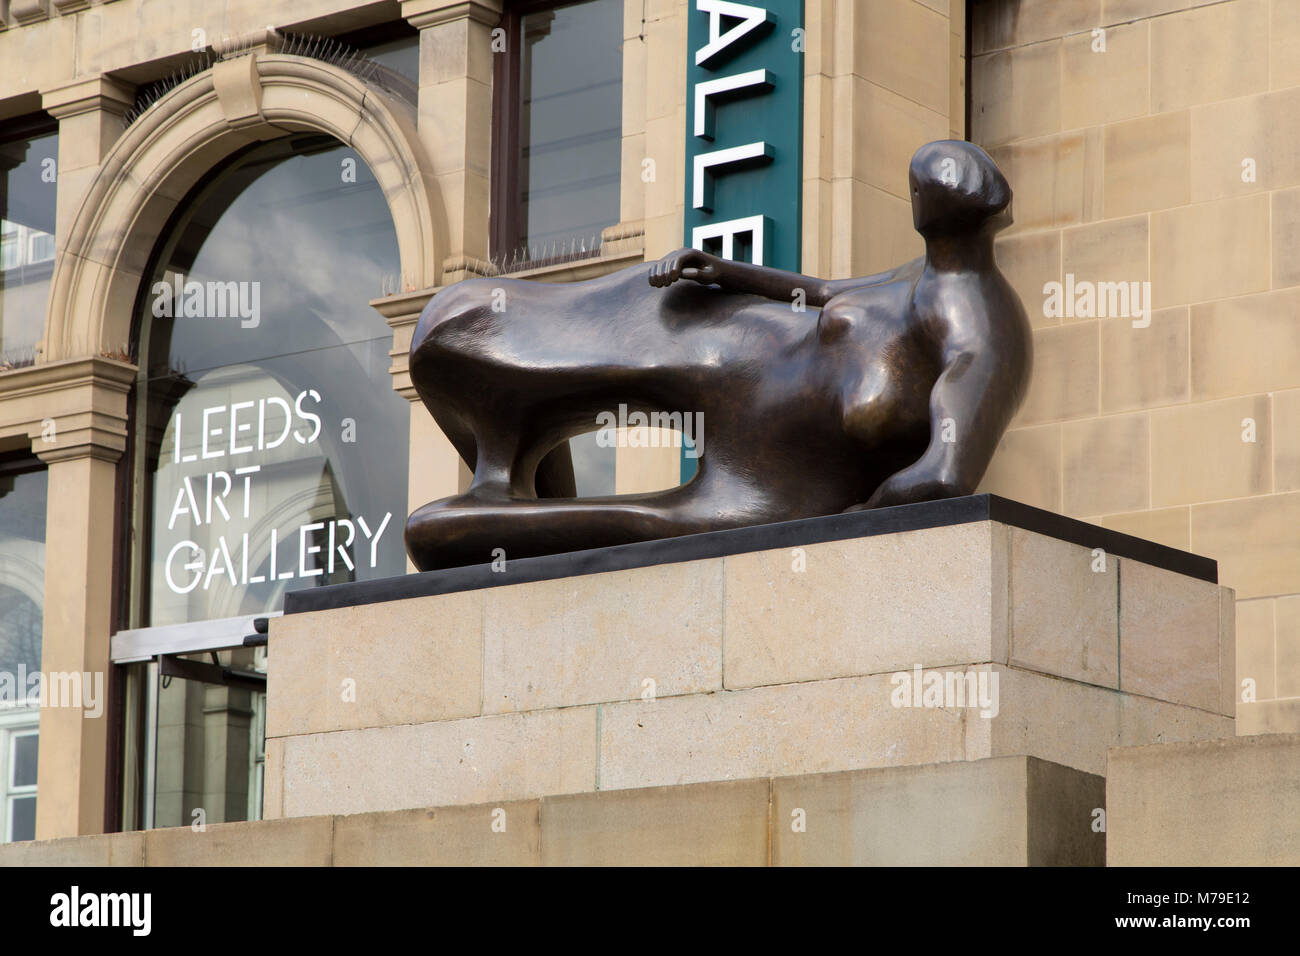 Leeds Art Gallery and Library in Leeds, UK. The building stands on the Headrow. Stock Photo